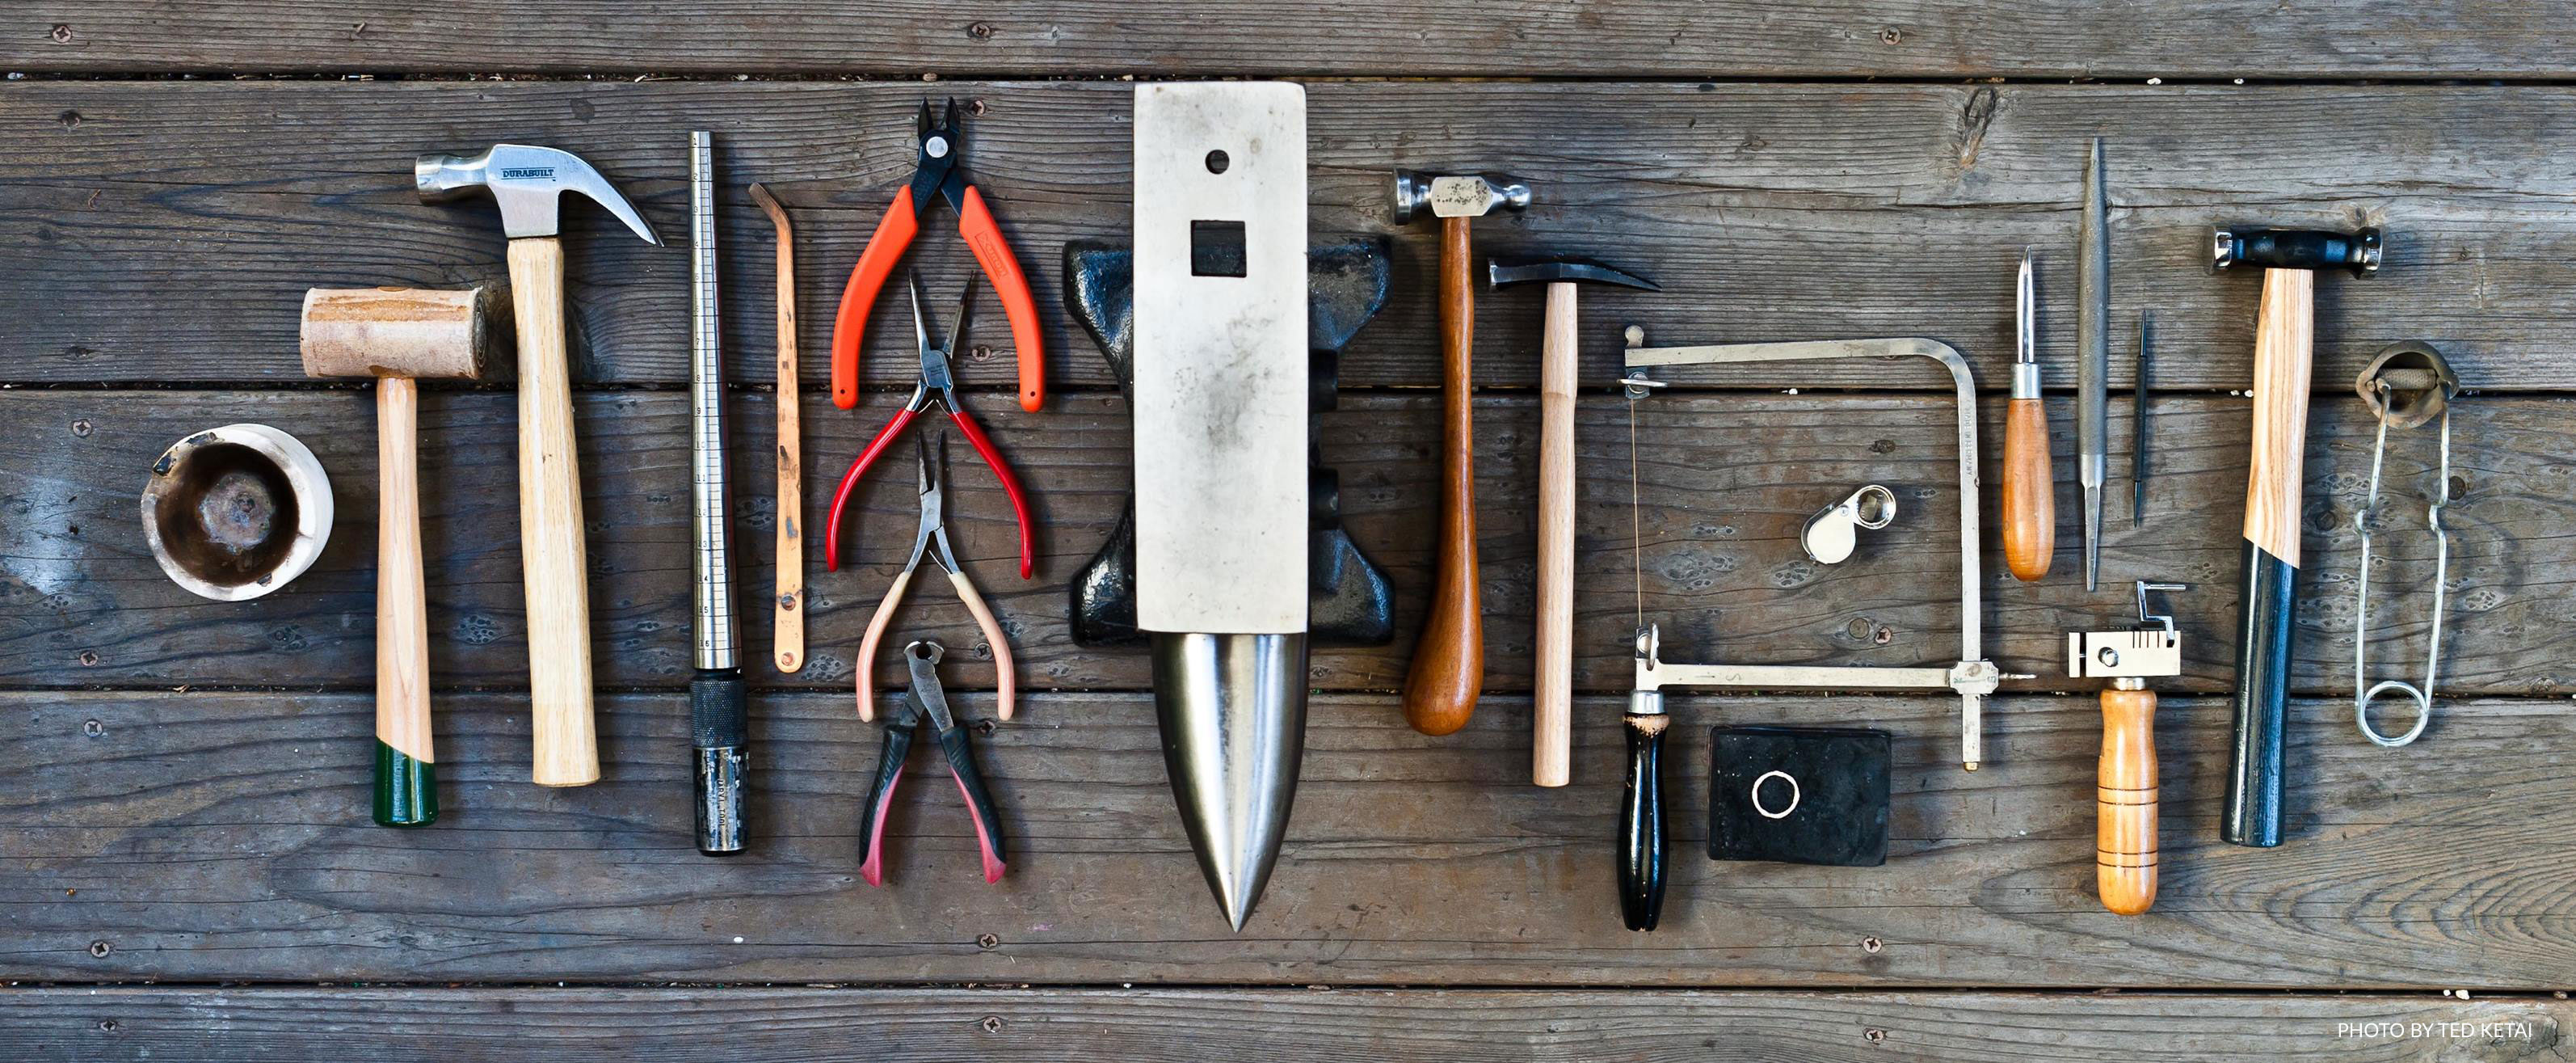 Tools-TedKetai-copy